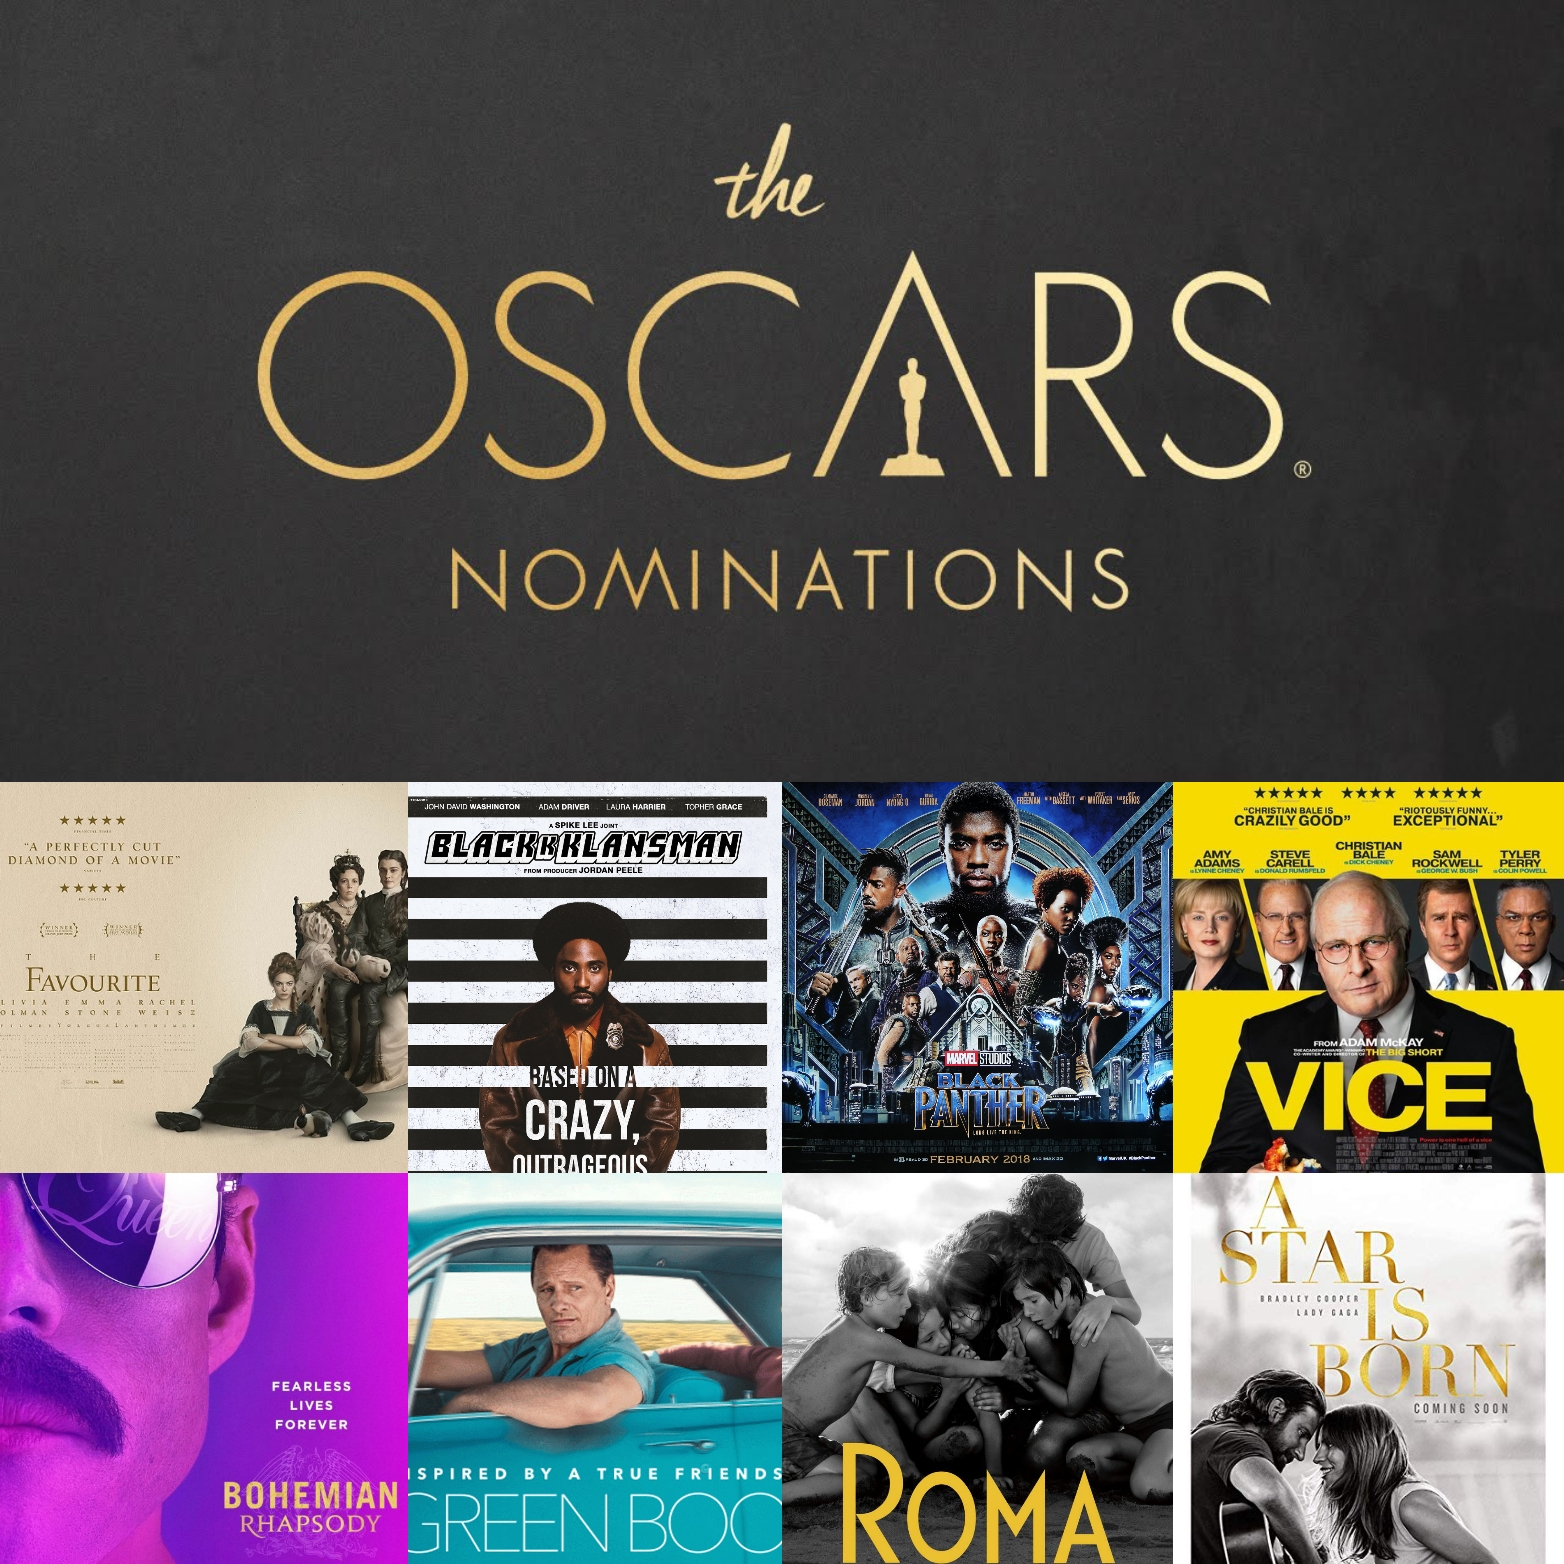 Oscar Nominations 2019 - Amanda is joined by her annual Oscars Crew, Stephen and Colleen, to discuss this year's Oscar Nominations. Who was snubbed and who they're excited about are all explored. Stephen might like The Favourite, Colleen kills it at music trivia and Amanda has some strong feelings about Best Original Screenplay.